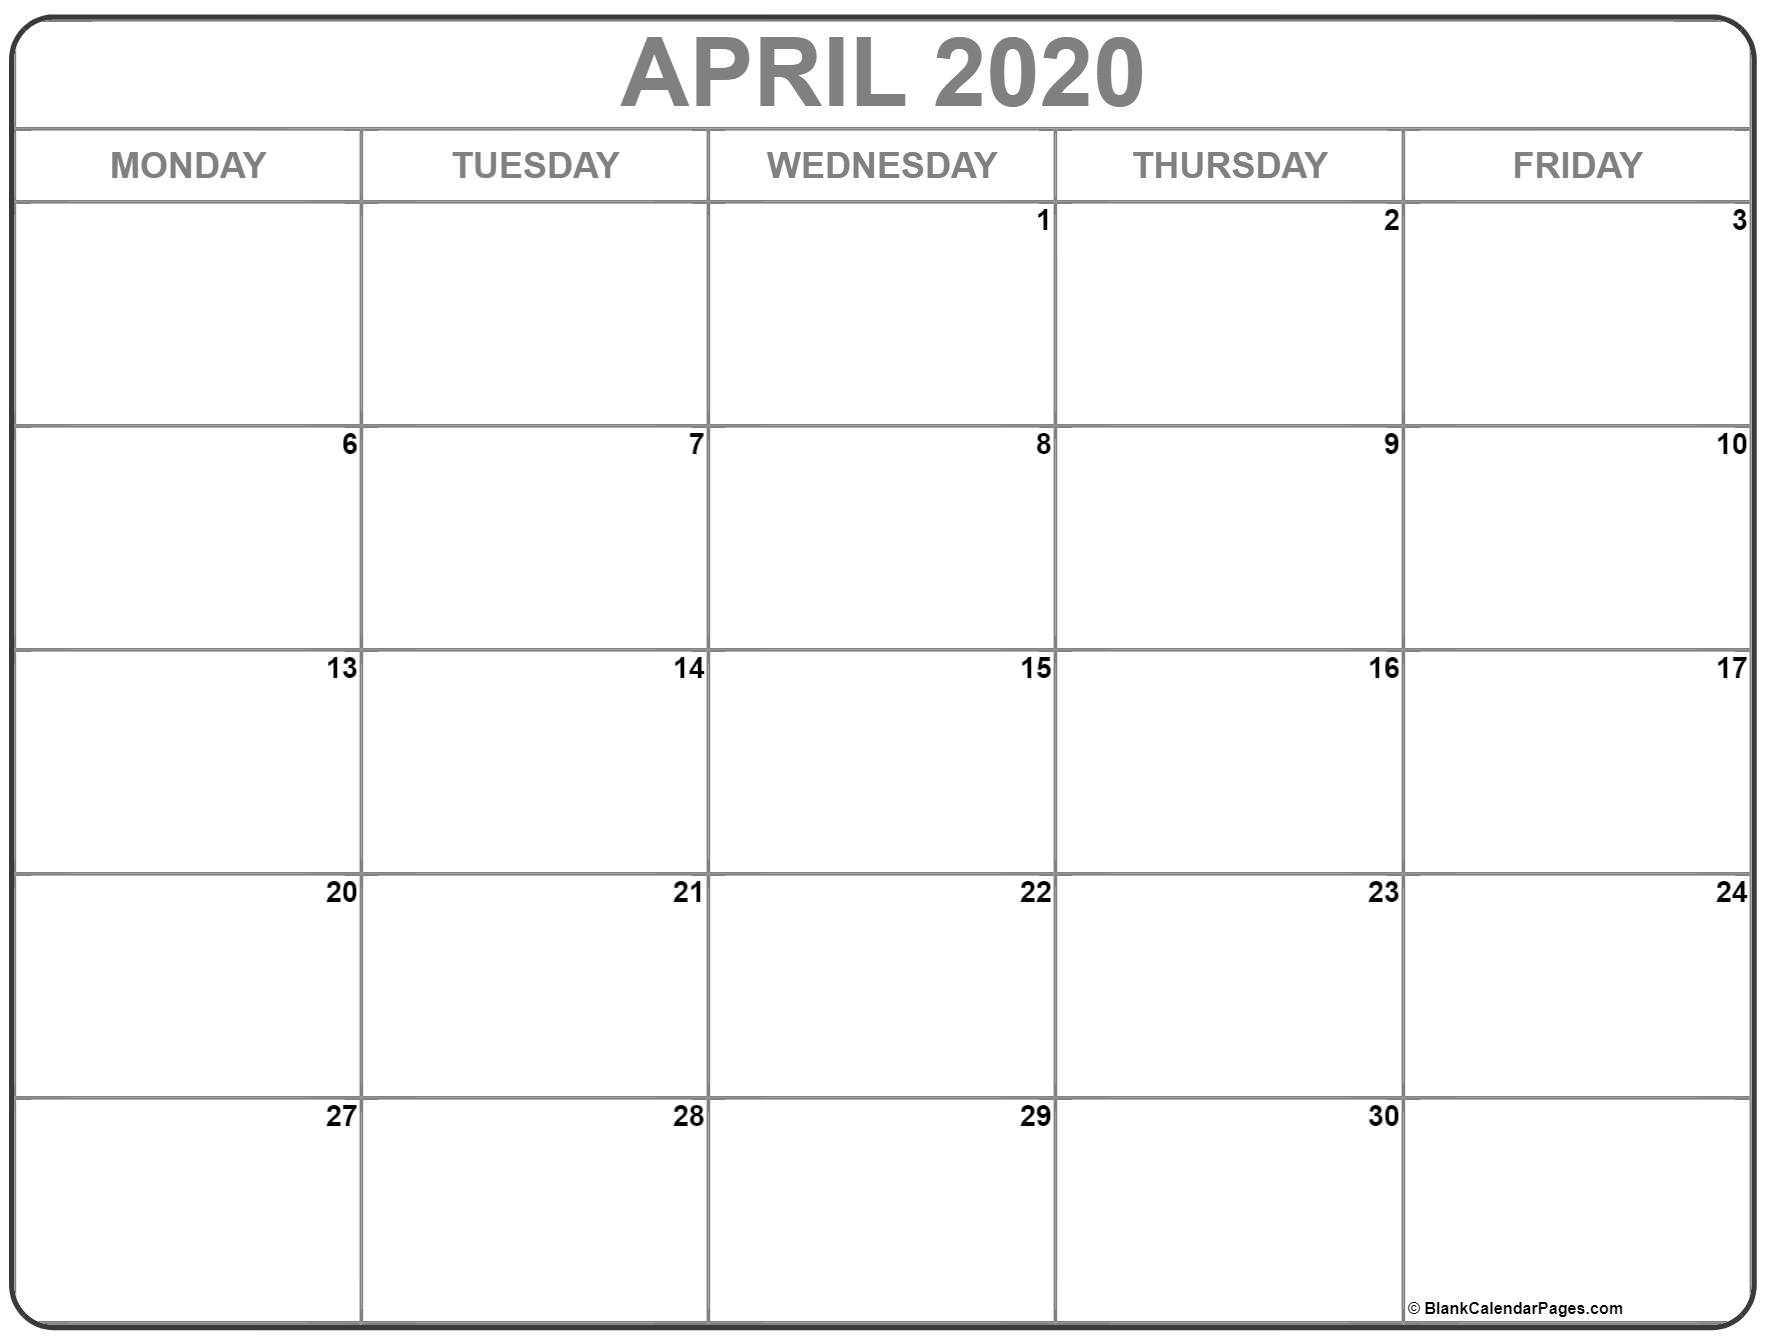 April 2020 Monday Calendar | Monday To Sunday in 2020 Calendar That Shows Only Monday Through Friday